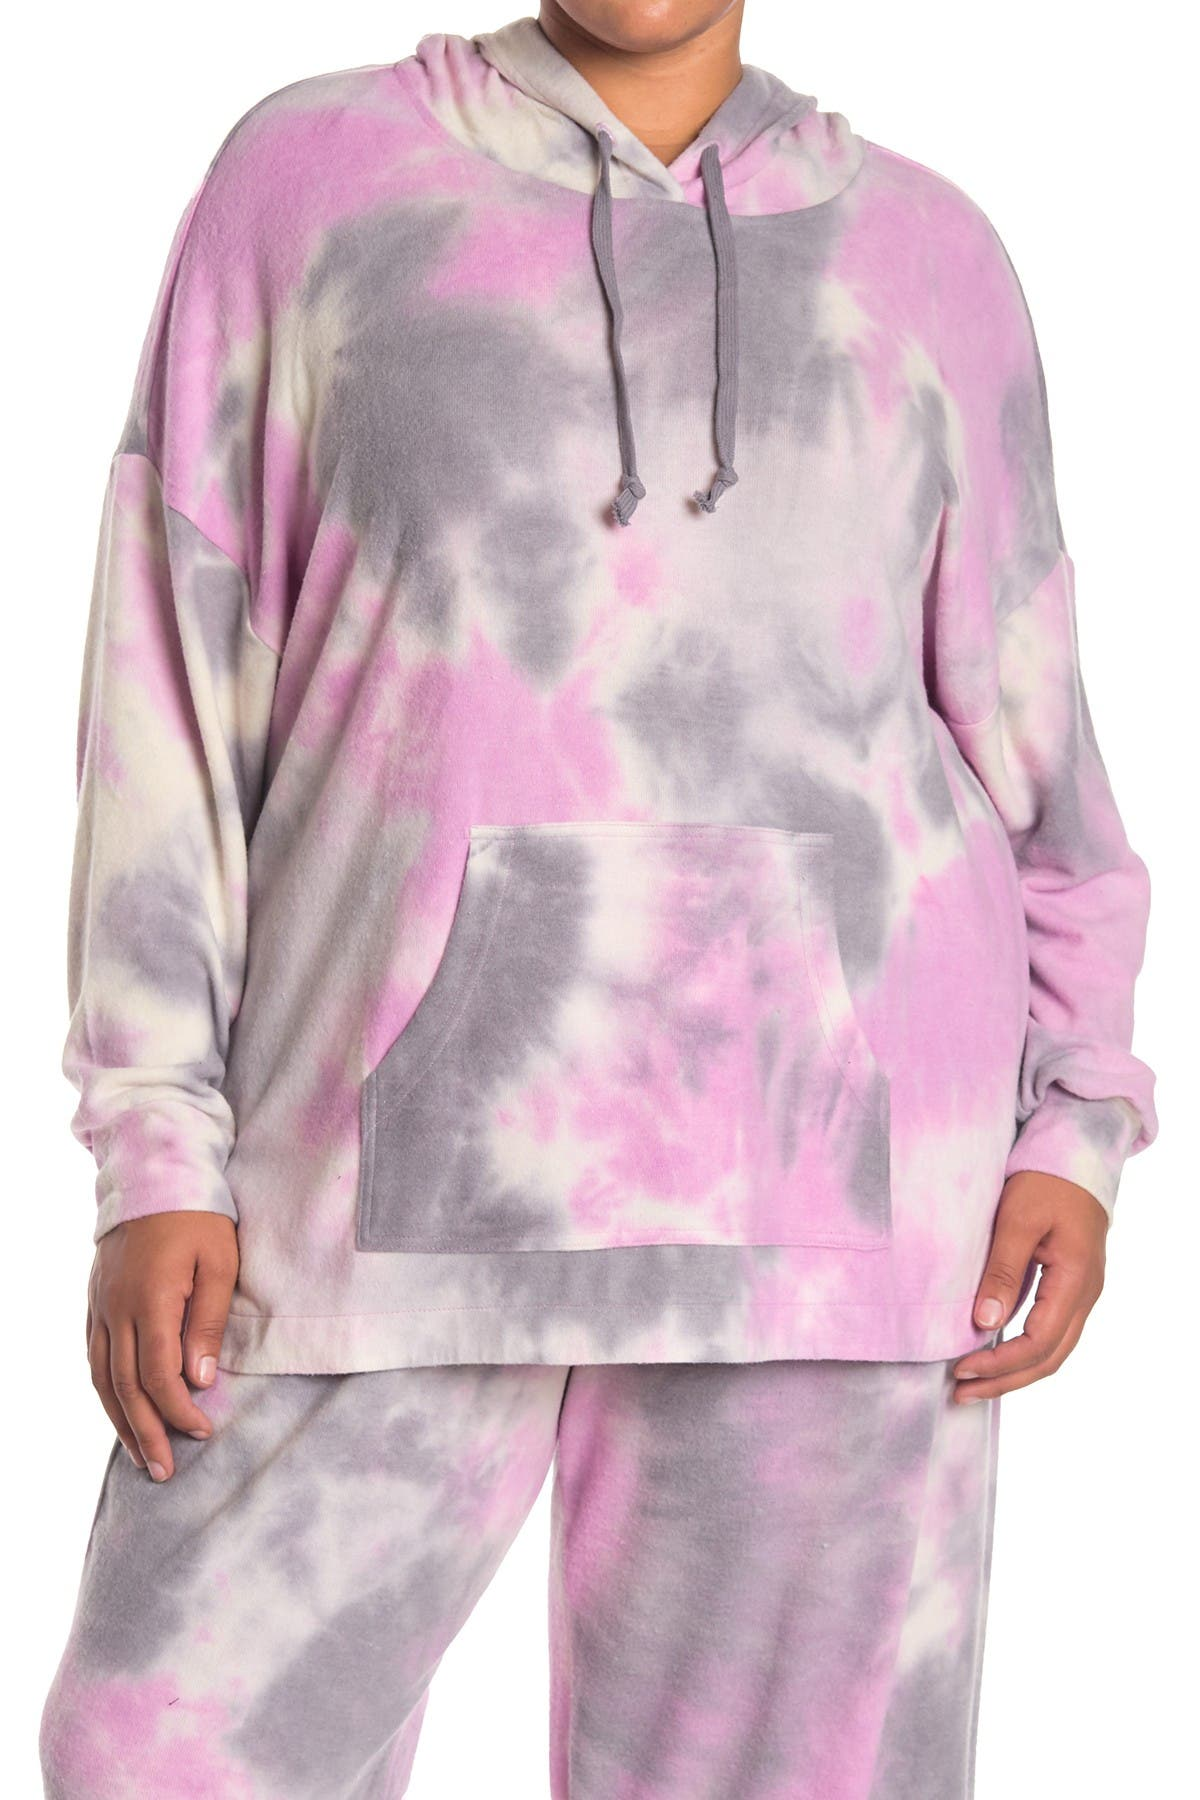 Image of MELLODAY Brushed Tie Dye Hoodie